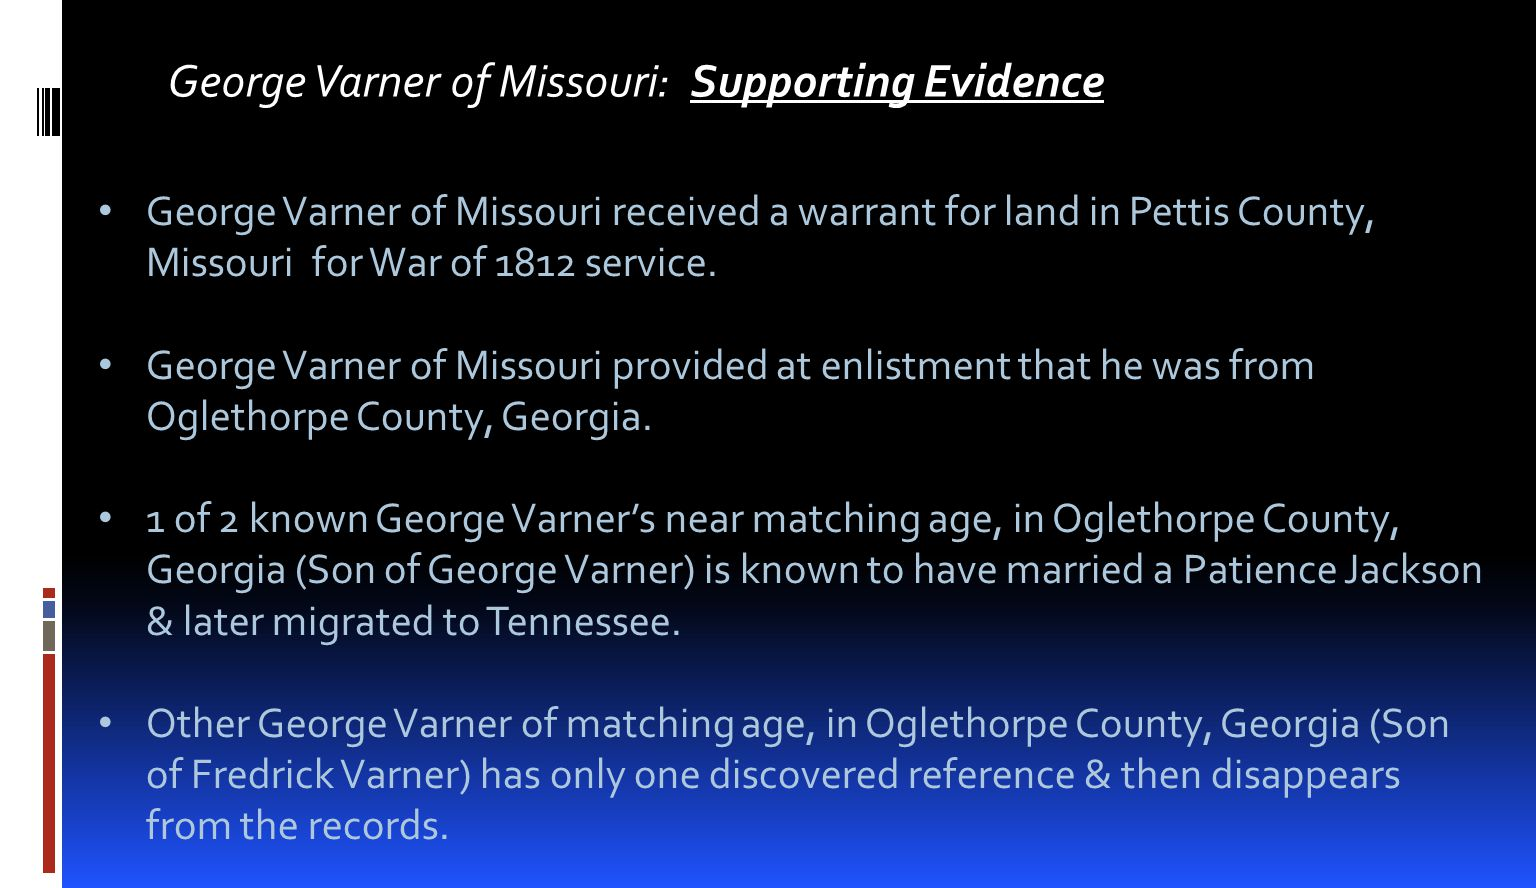 George Varner of Missouri: Supporting Evidence George Varner of Missouri received a warrant for land in Pettis County, Missouri for War of 1812 servic